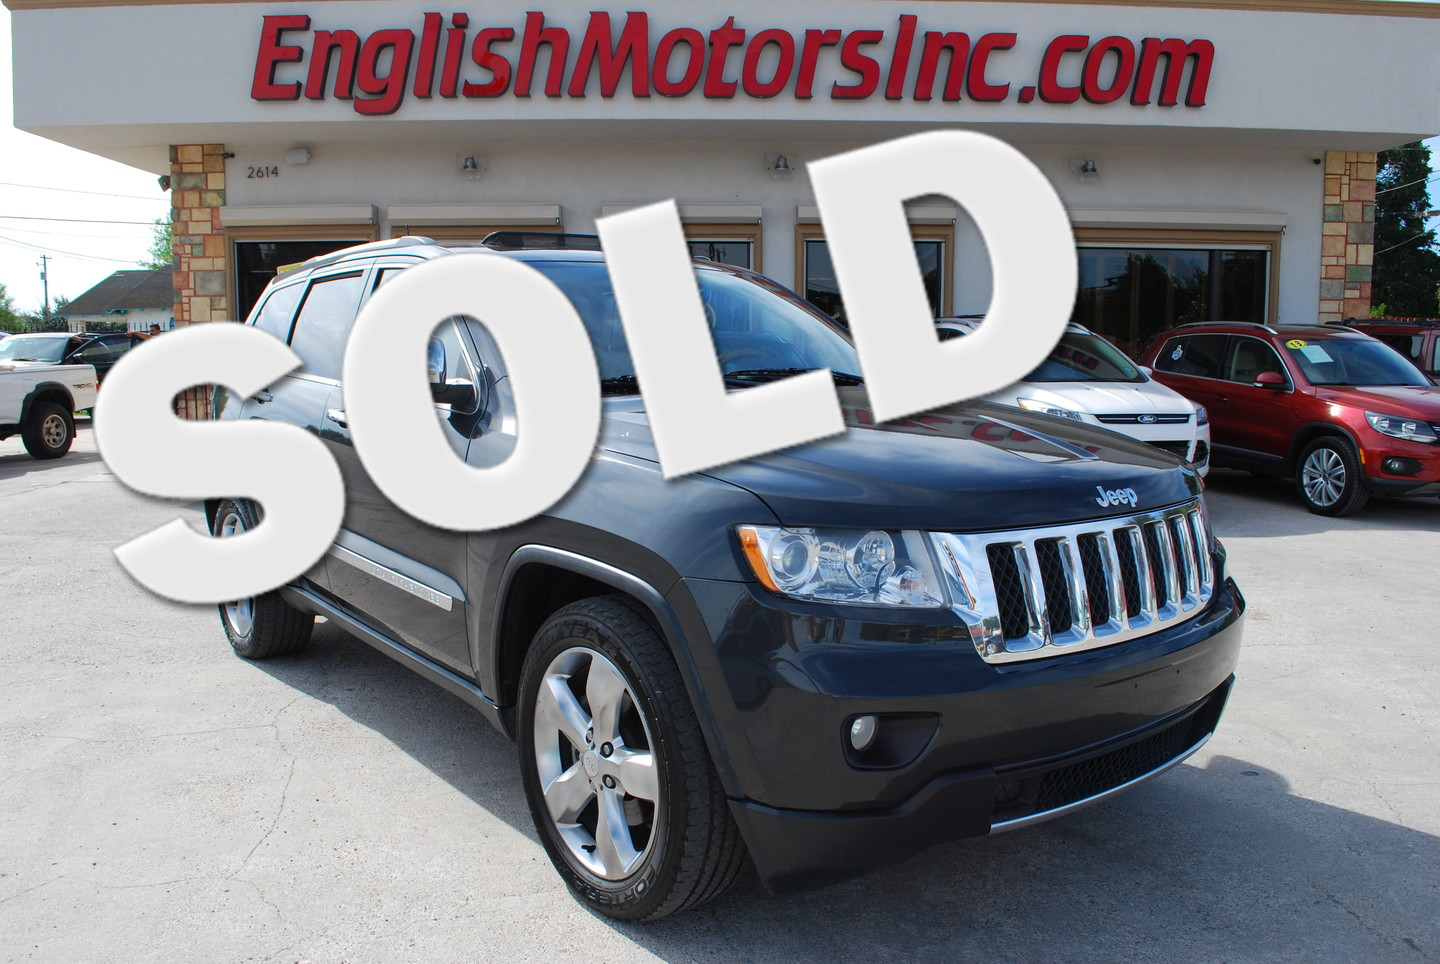 2011 jeep grand cherokee overland brownsville tx english English motors inc